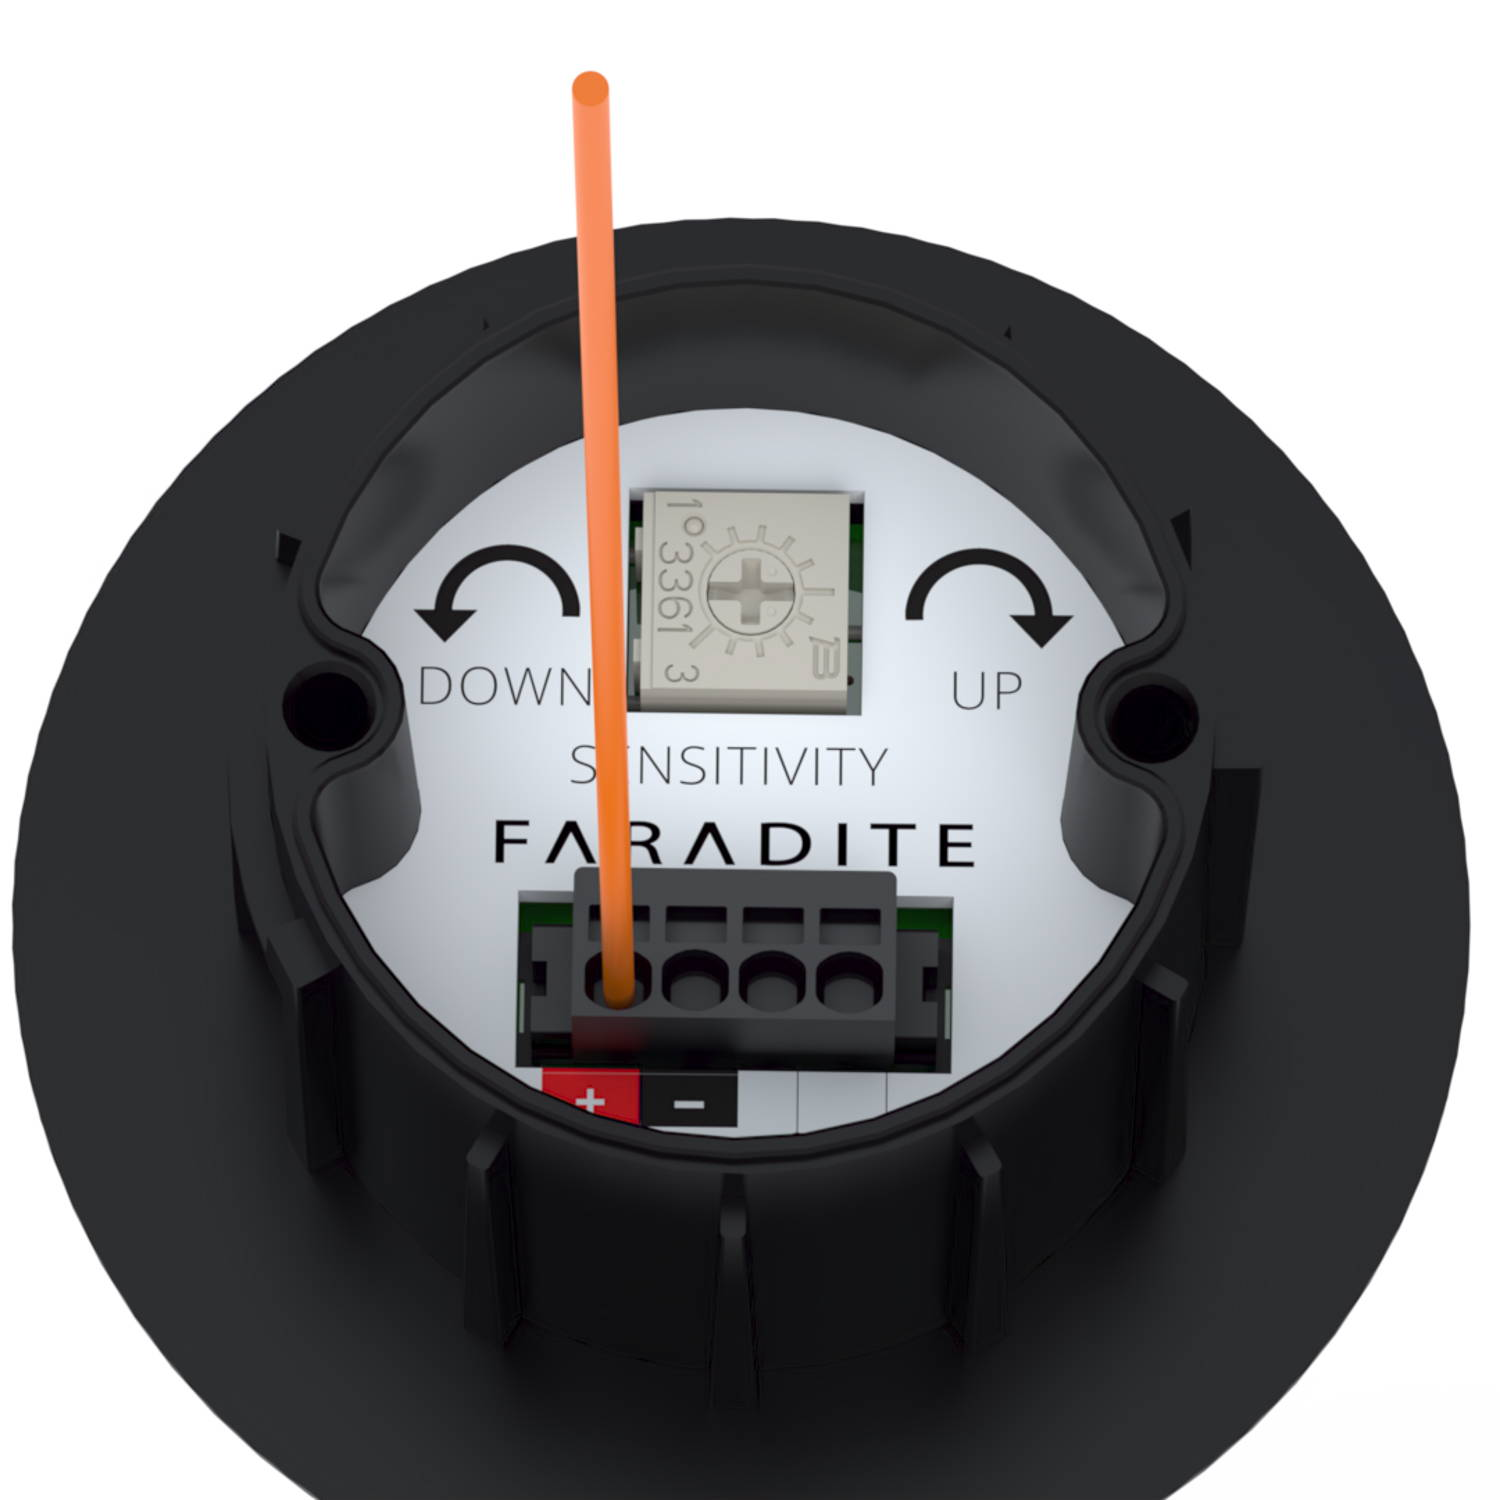 Black Faradite IP67 Motion Sensor 360 dry contact connected cable